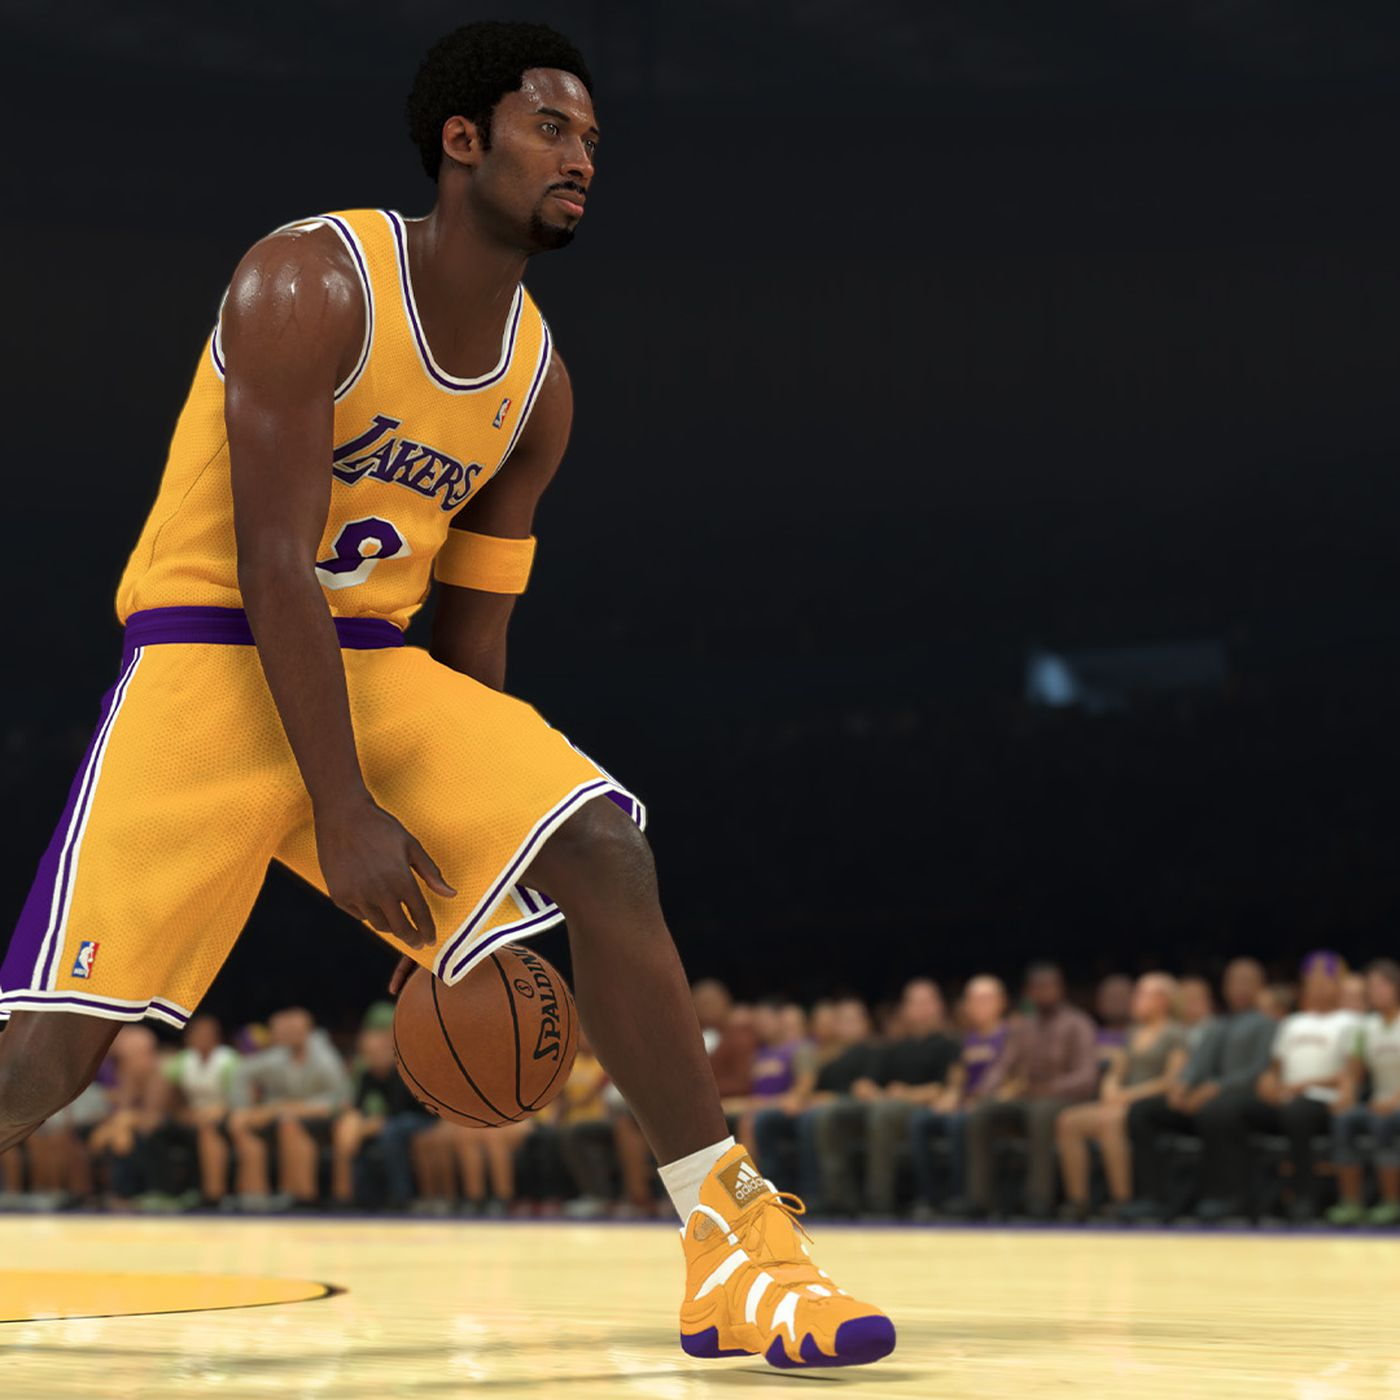 Nba 2k21 S Myteam Will Carry Progression And Currency To Next Gen Consoles Polygon